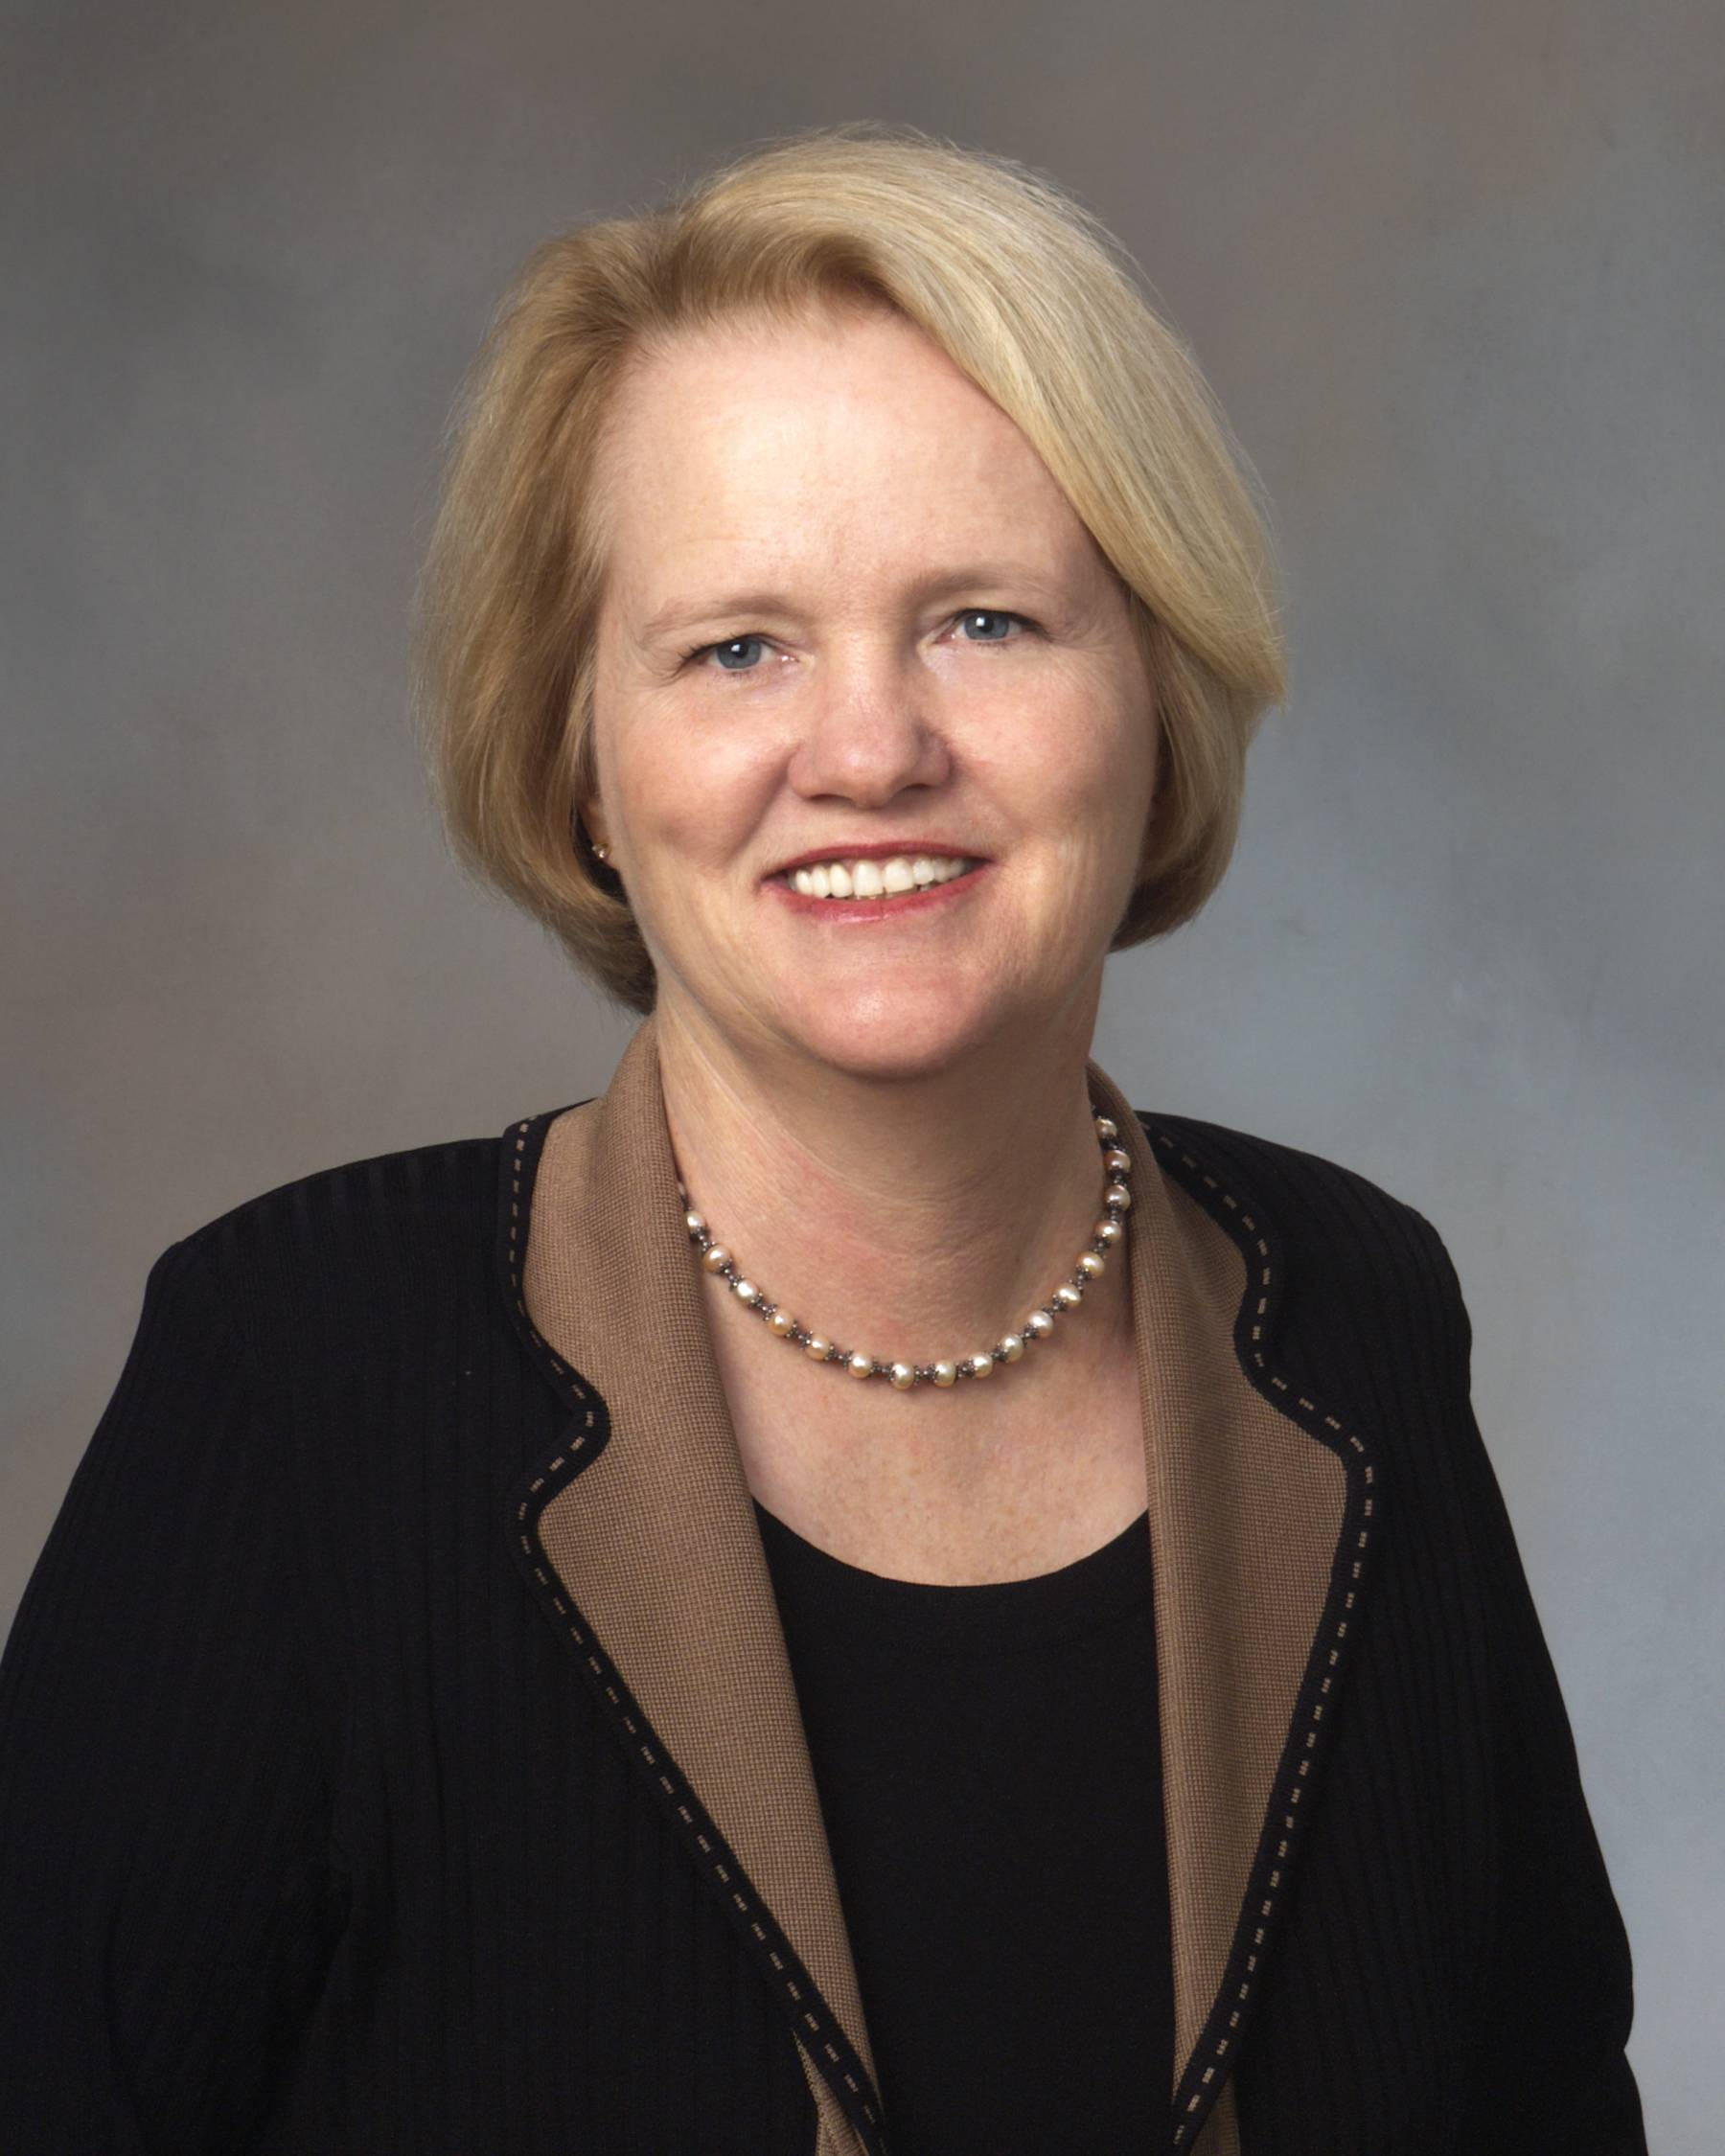 Carol Larson : President and CEO, The David & Lucile Packard Foundation